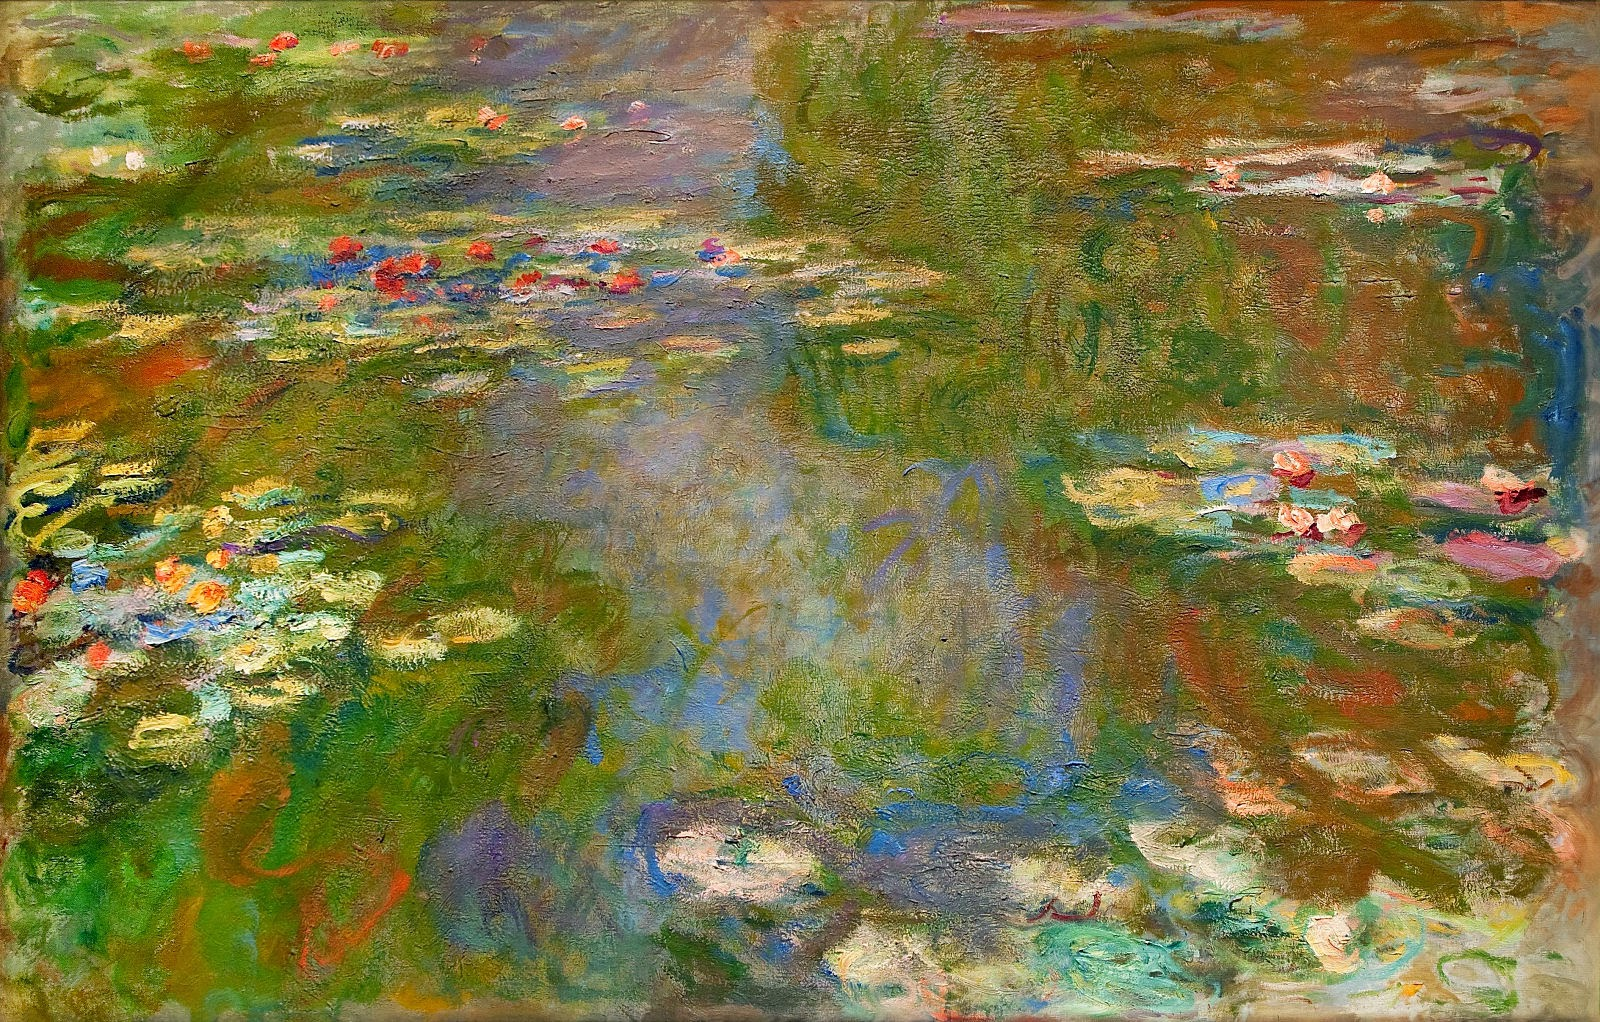 Art artists claude monet part 24 1897 1922 water lilies for Monet paintings images